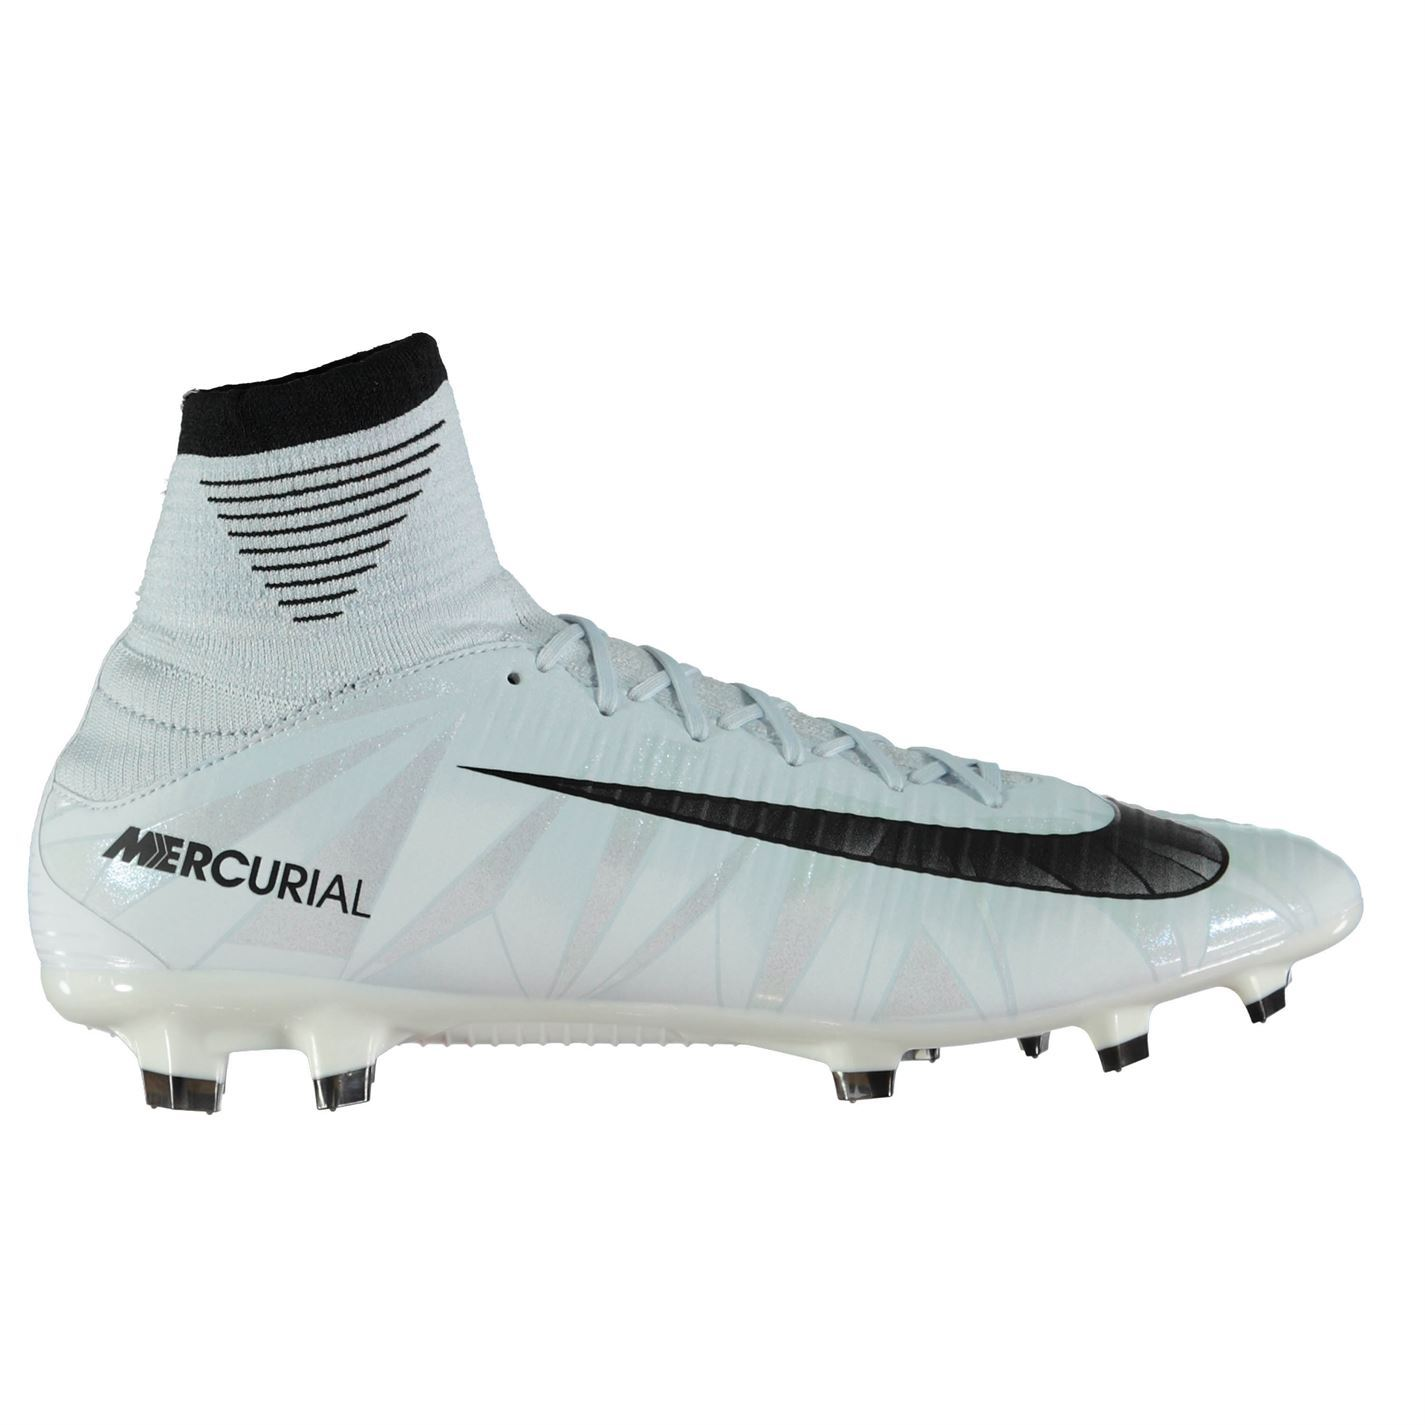 d21602cf3d2a ... Nike Mercurial Veloce CR7 DF FG FG Football Boots Mens Blue Soccer Shoes  Cleats ...